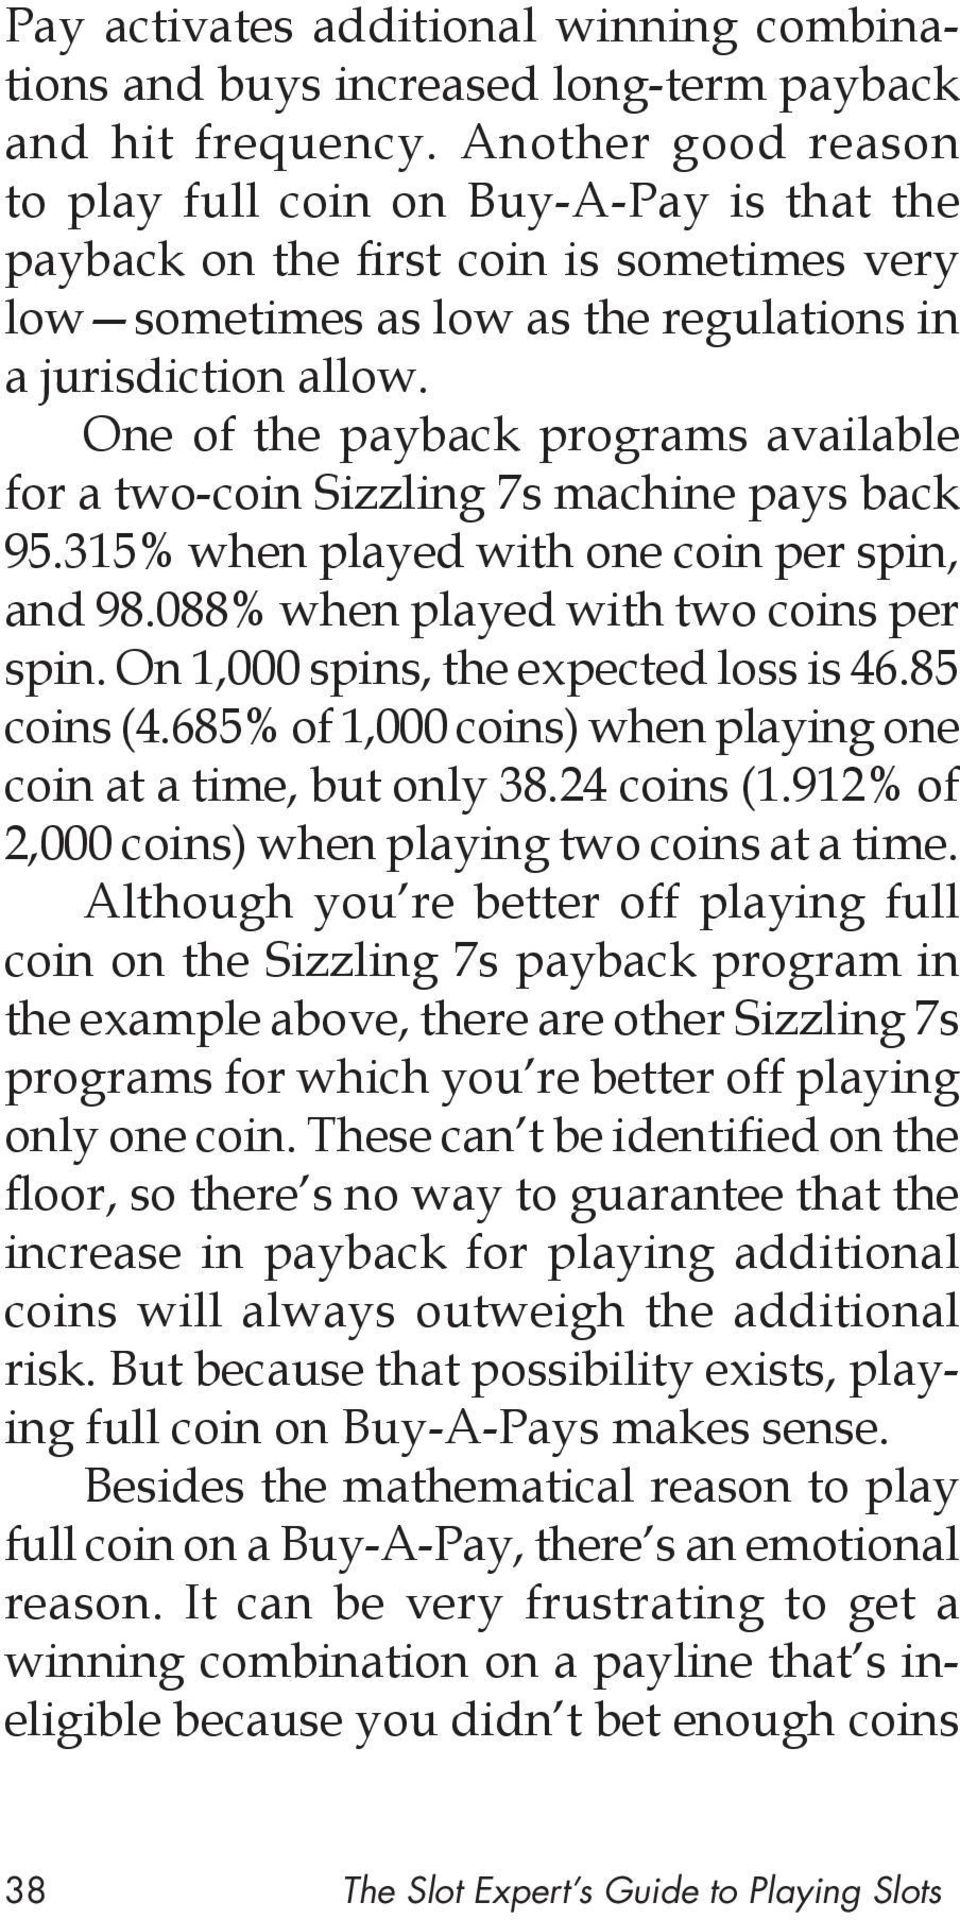 One of the payback programs available for a two-coin Sizzling 7s machine pays back 95.315% when played with one coin per spin, and 98.088% when played with two coins per spin.